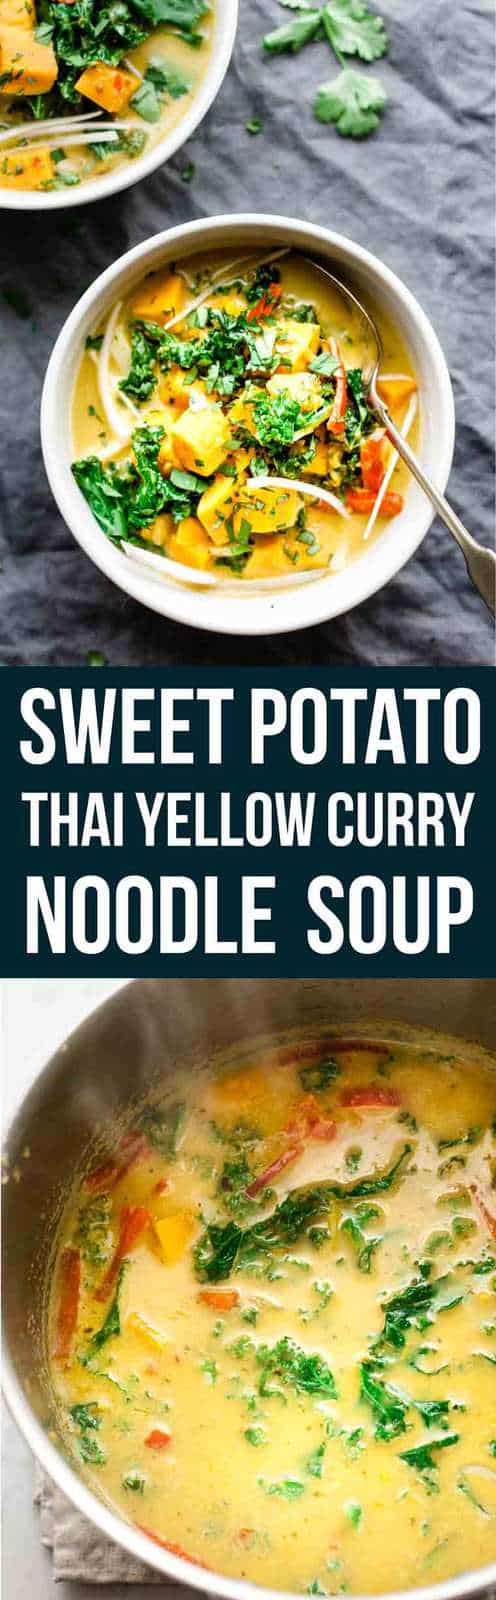 This Thai yellow curry sweet potato soup is a quick and simple soup that\'s high on flavour and low on fat. And it only takes 15 minutes. #healthy #soup #Thaicurry #curry #easyrecipe